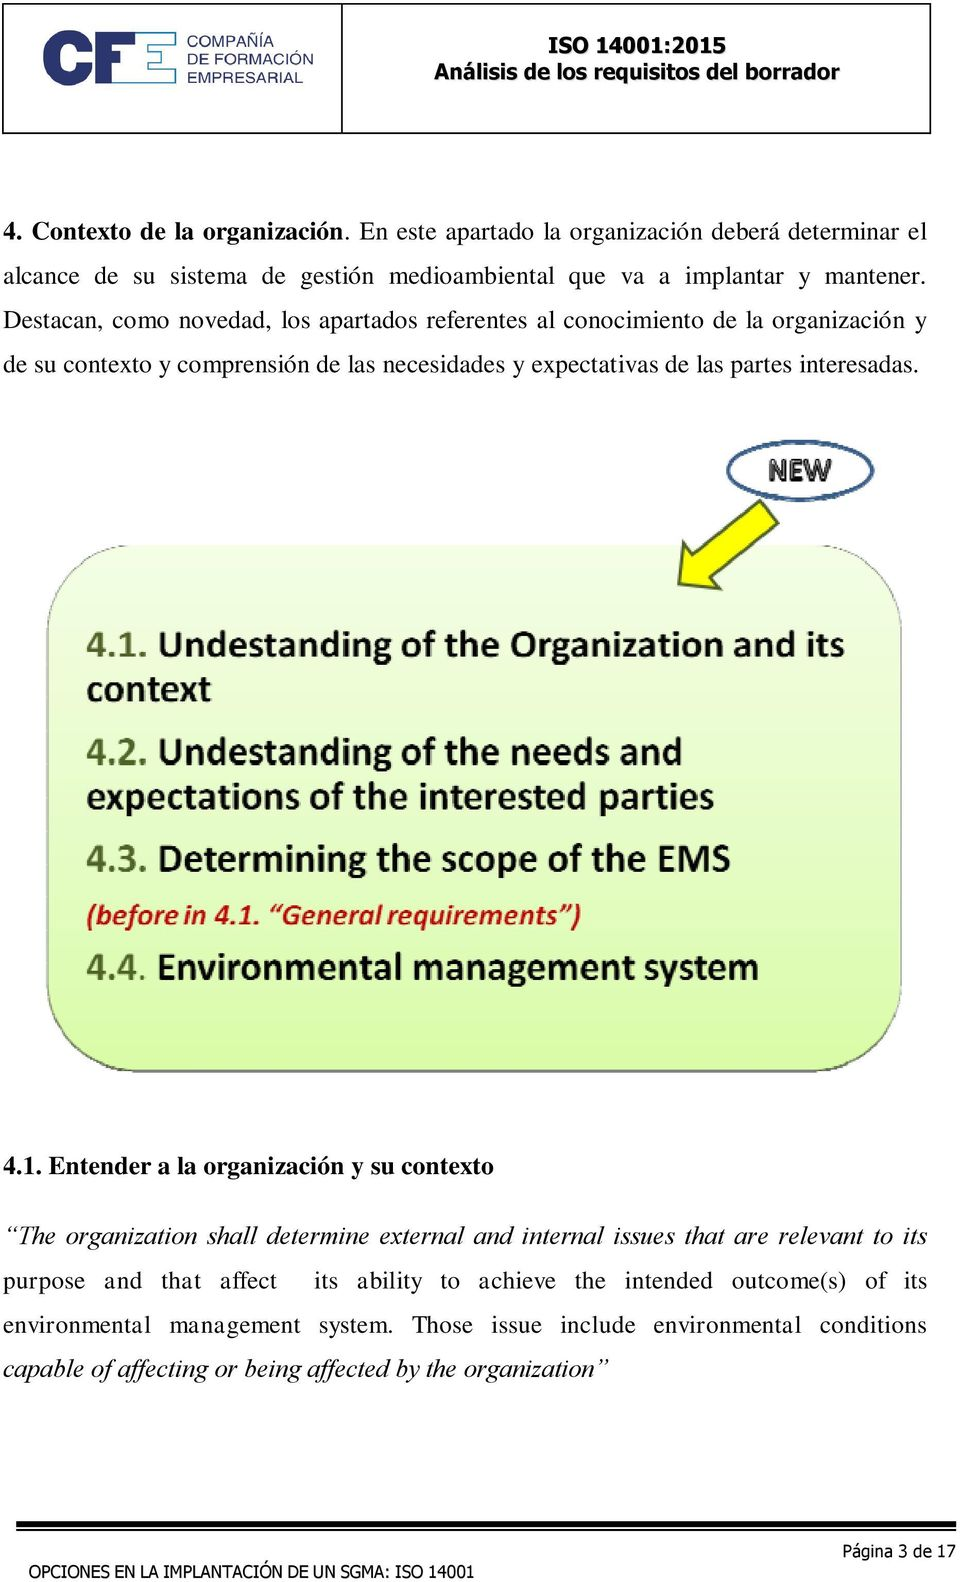 4.1. Entender a la organización y su contexto The organization shall determine external and internal issues that are relevant to its purpose and that affect its ability to